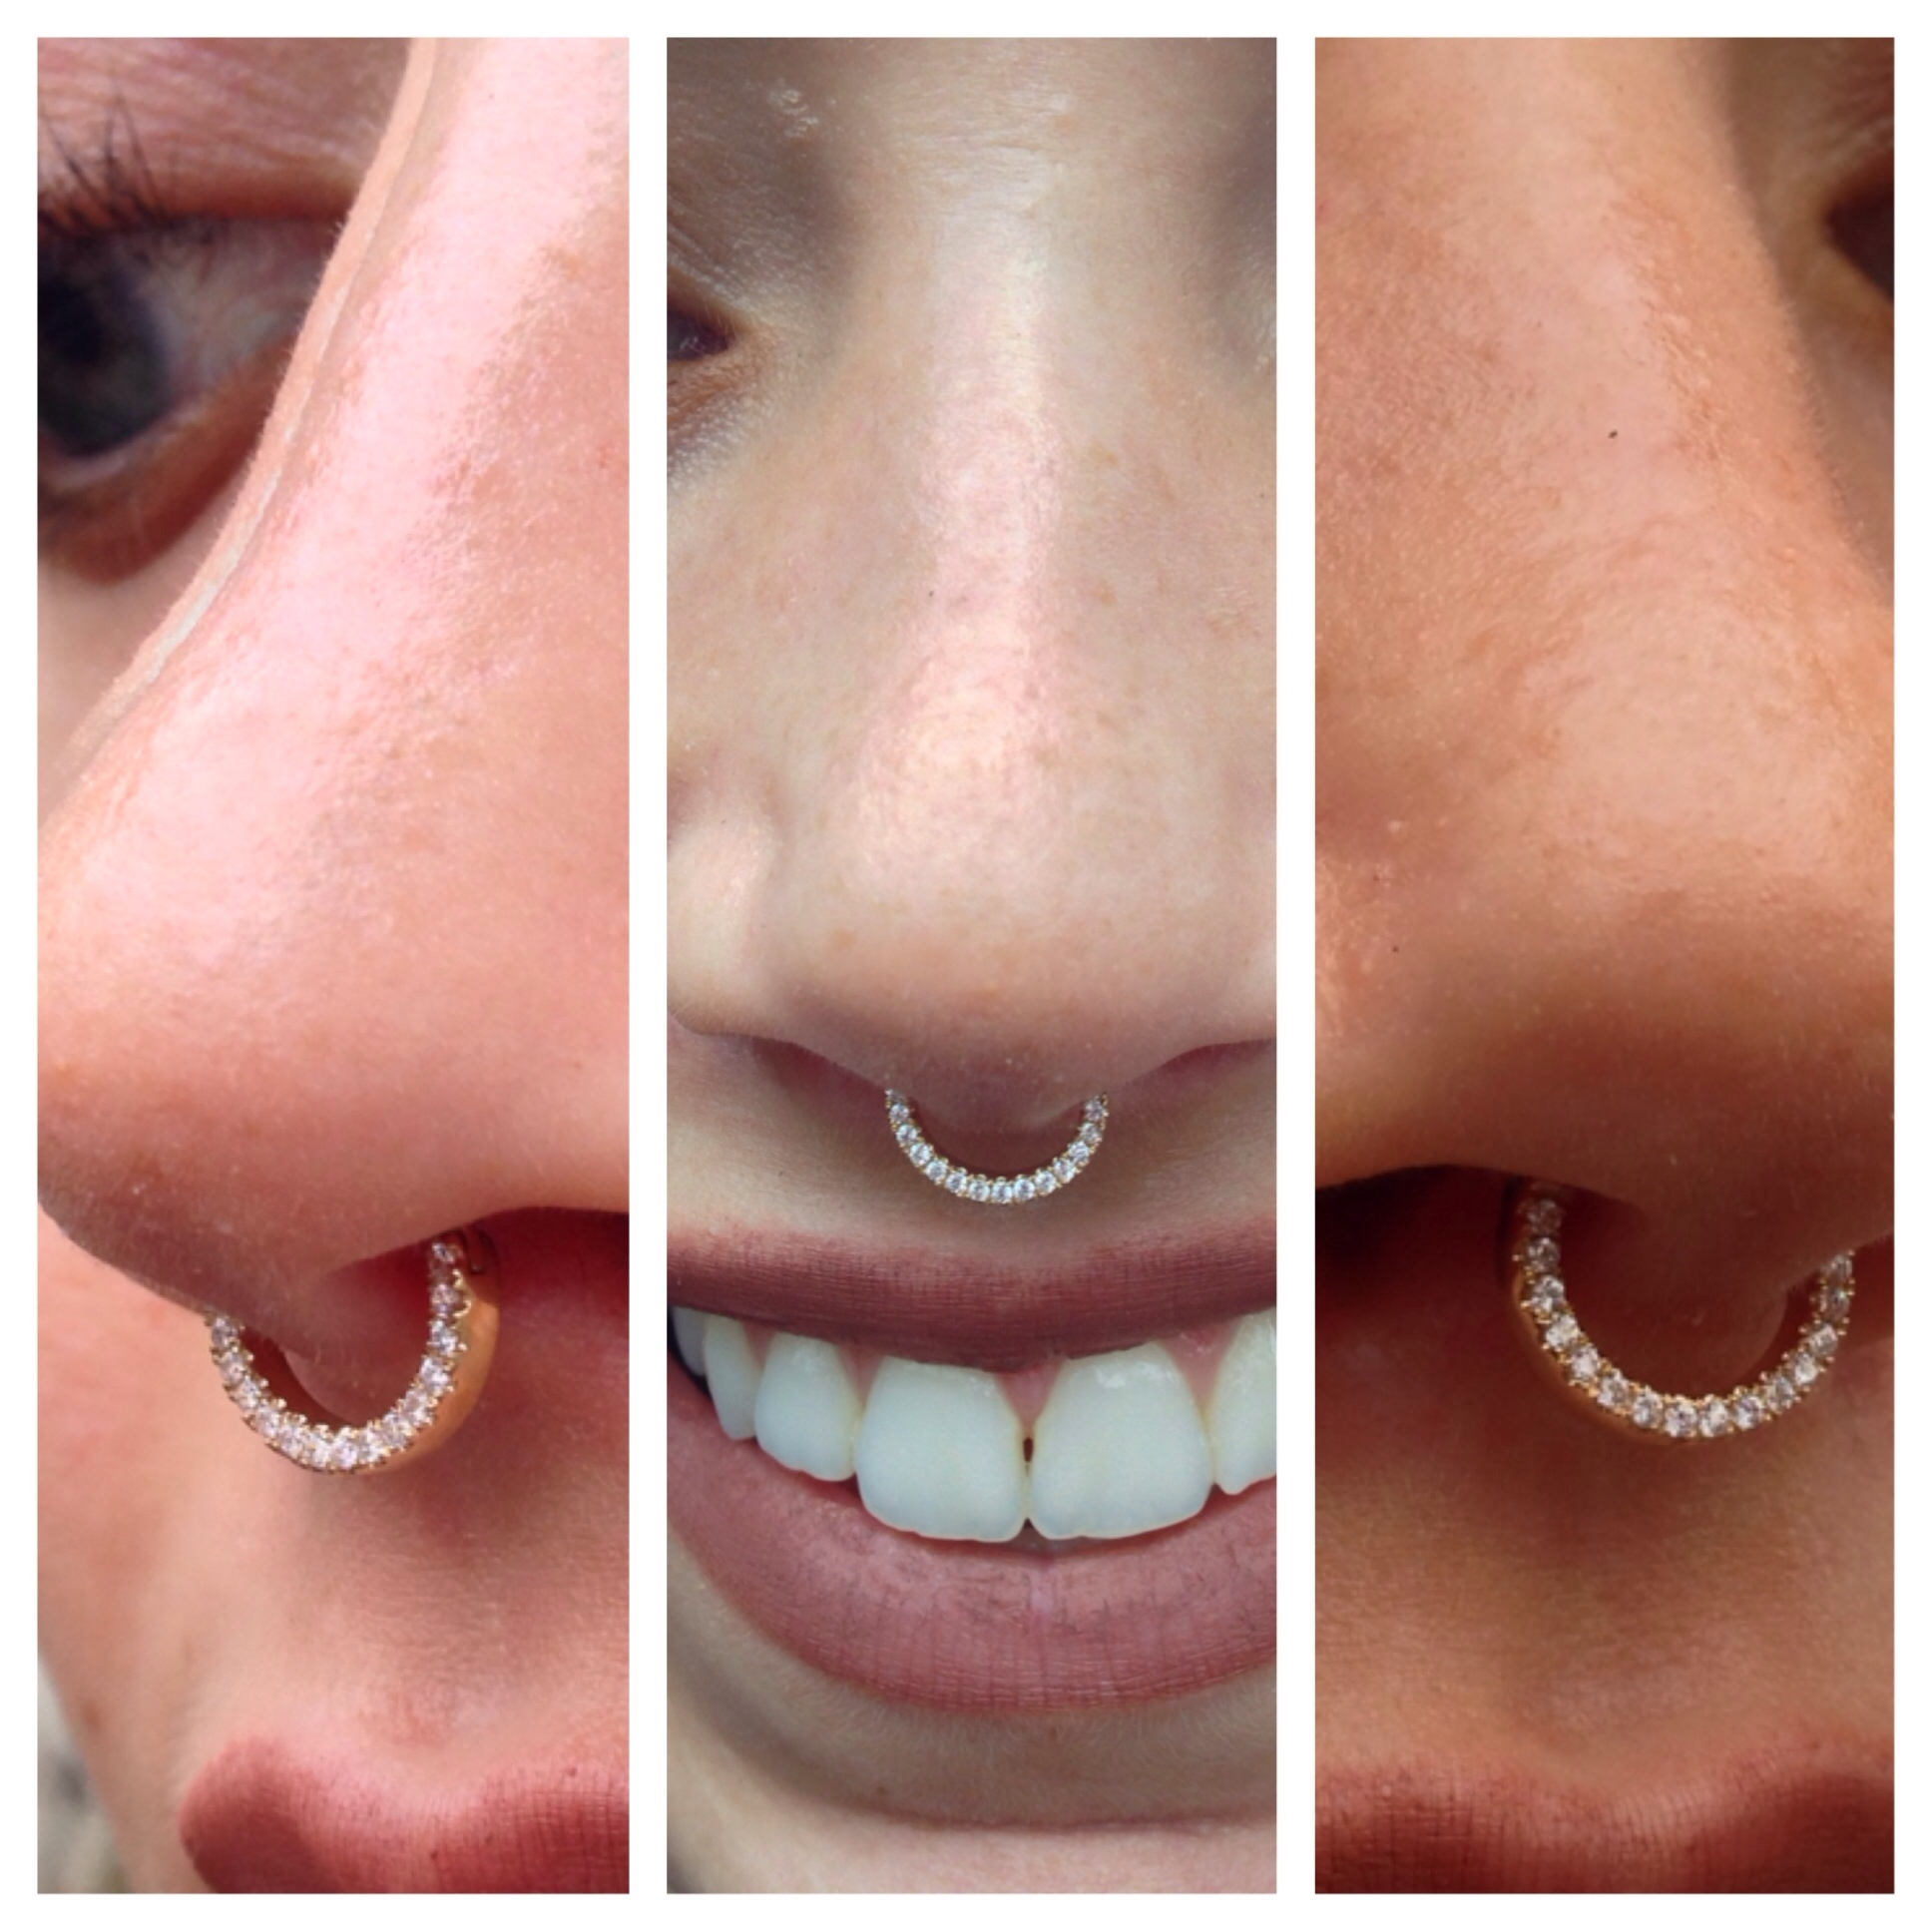 Septum Piercing With A 14K Yellow Gold Septum Clicker With White Pertaining To Latest Chevron Septum Rings (Gallery 5 of 15)